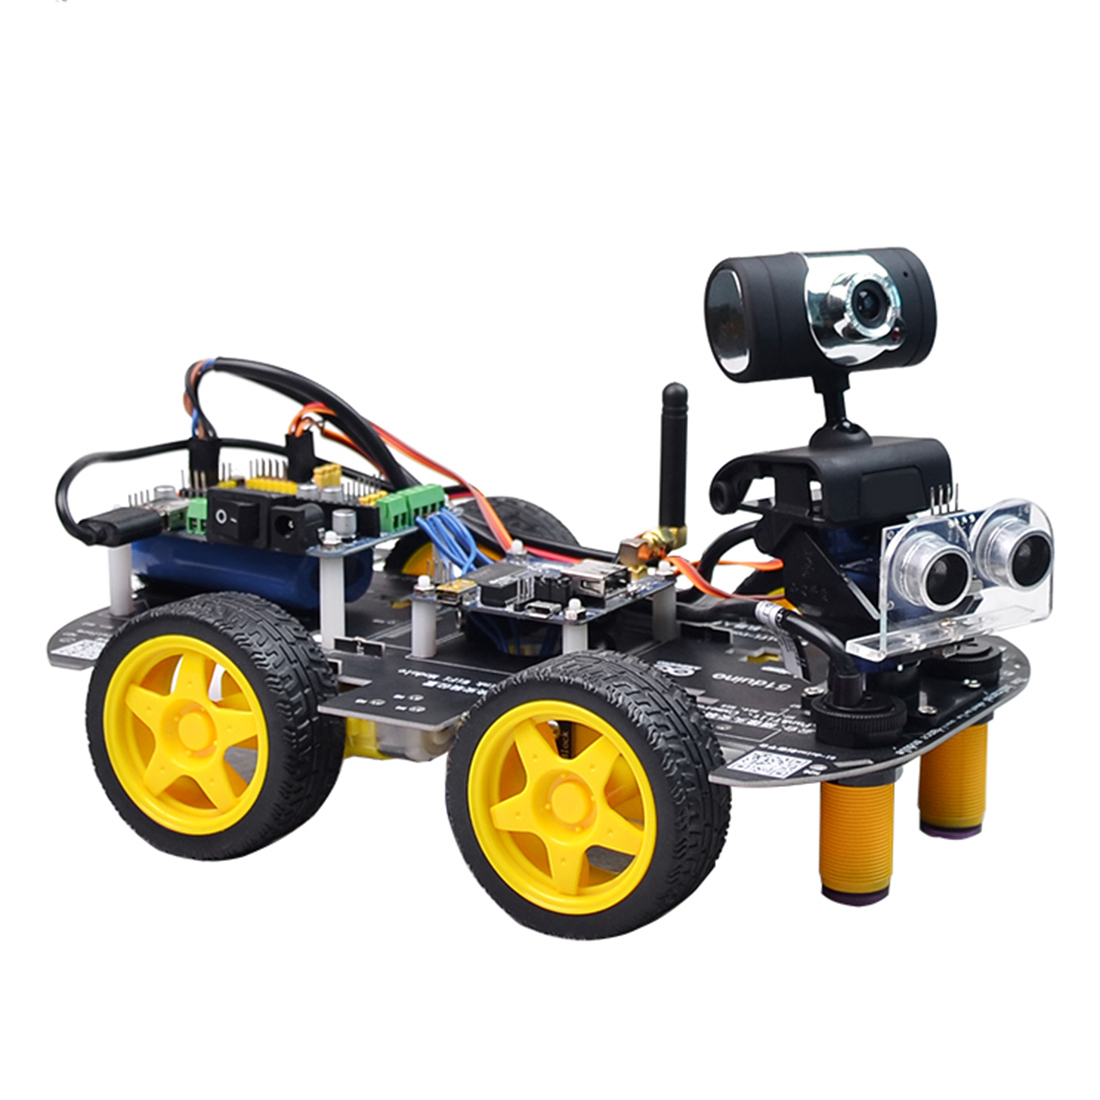 Programmable Robot DIY Wifi Steam Educational Car With Graphic Programming XR BLOCK Linux For Arduino UNO R3( Updated Version)